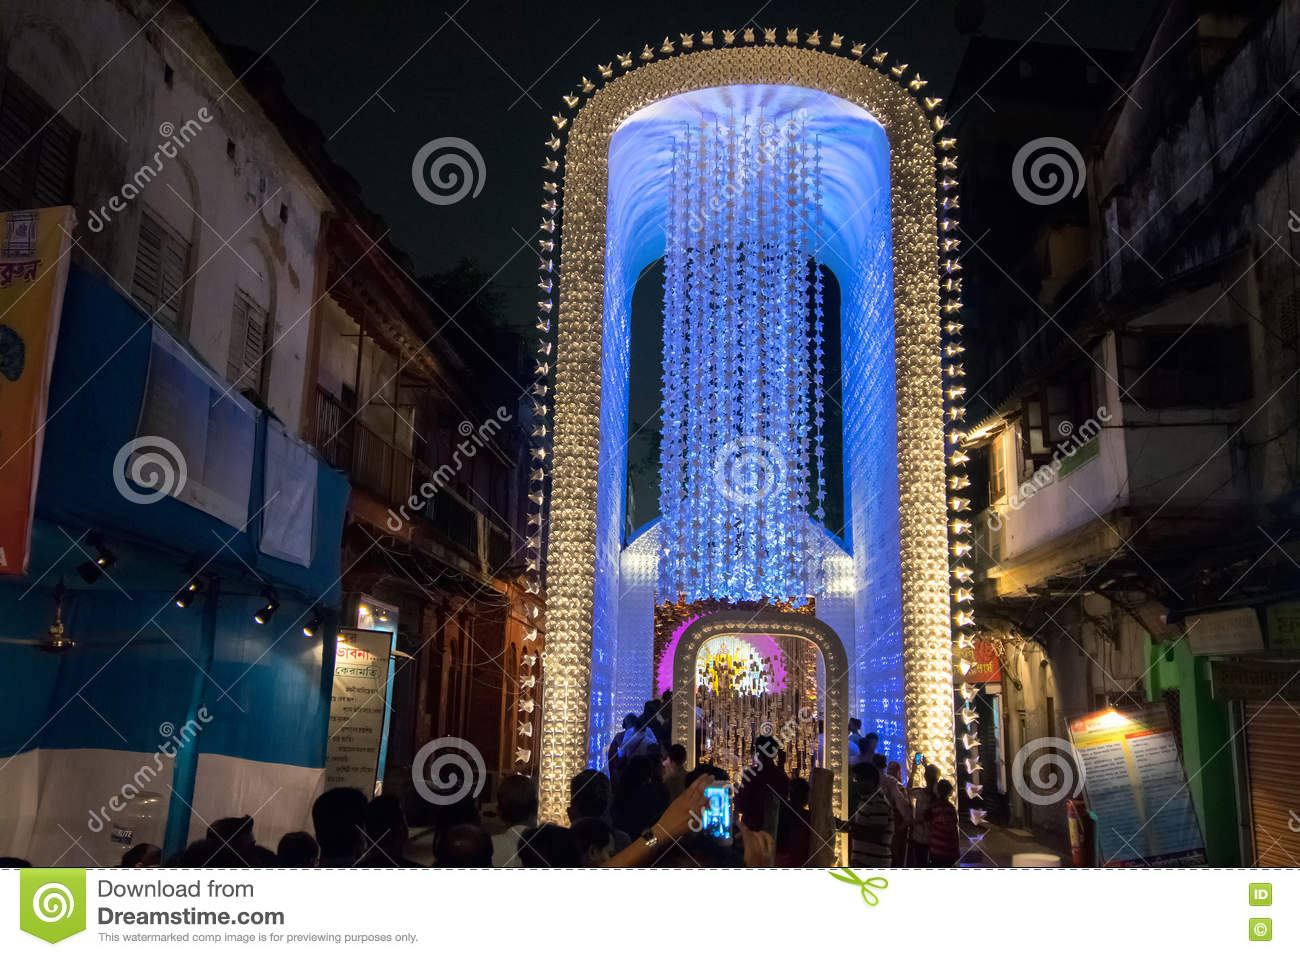 Night image of decorated durga puja pandal kolkata west bengal night image of decorated durga puja pandal kolkata west bengal india dussera ceremony thecheapjerseys Images